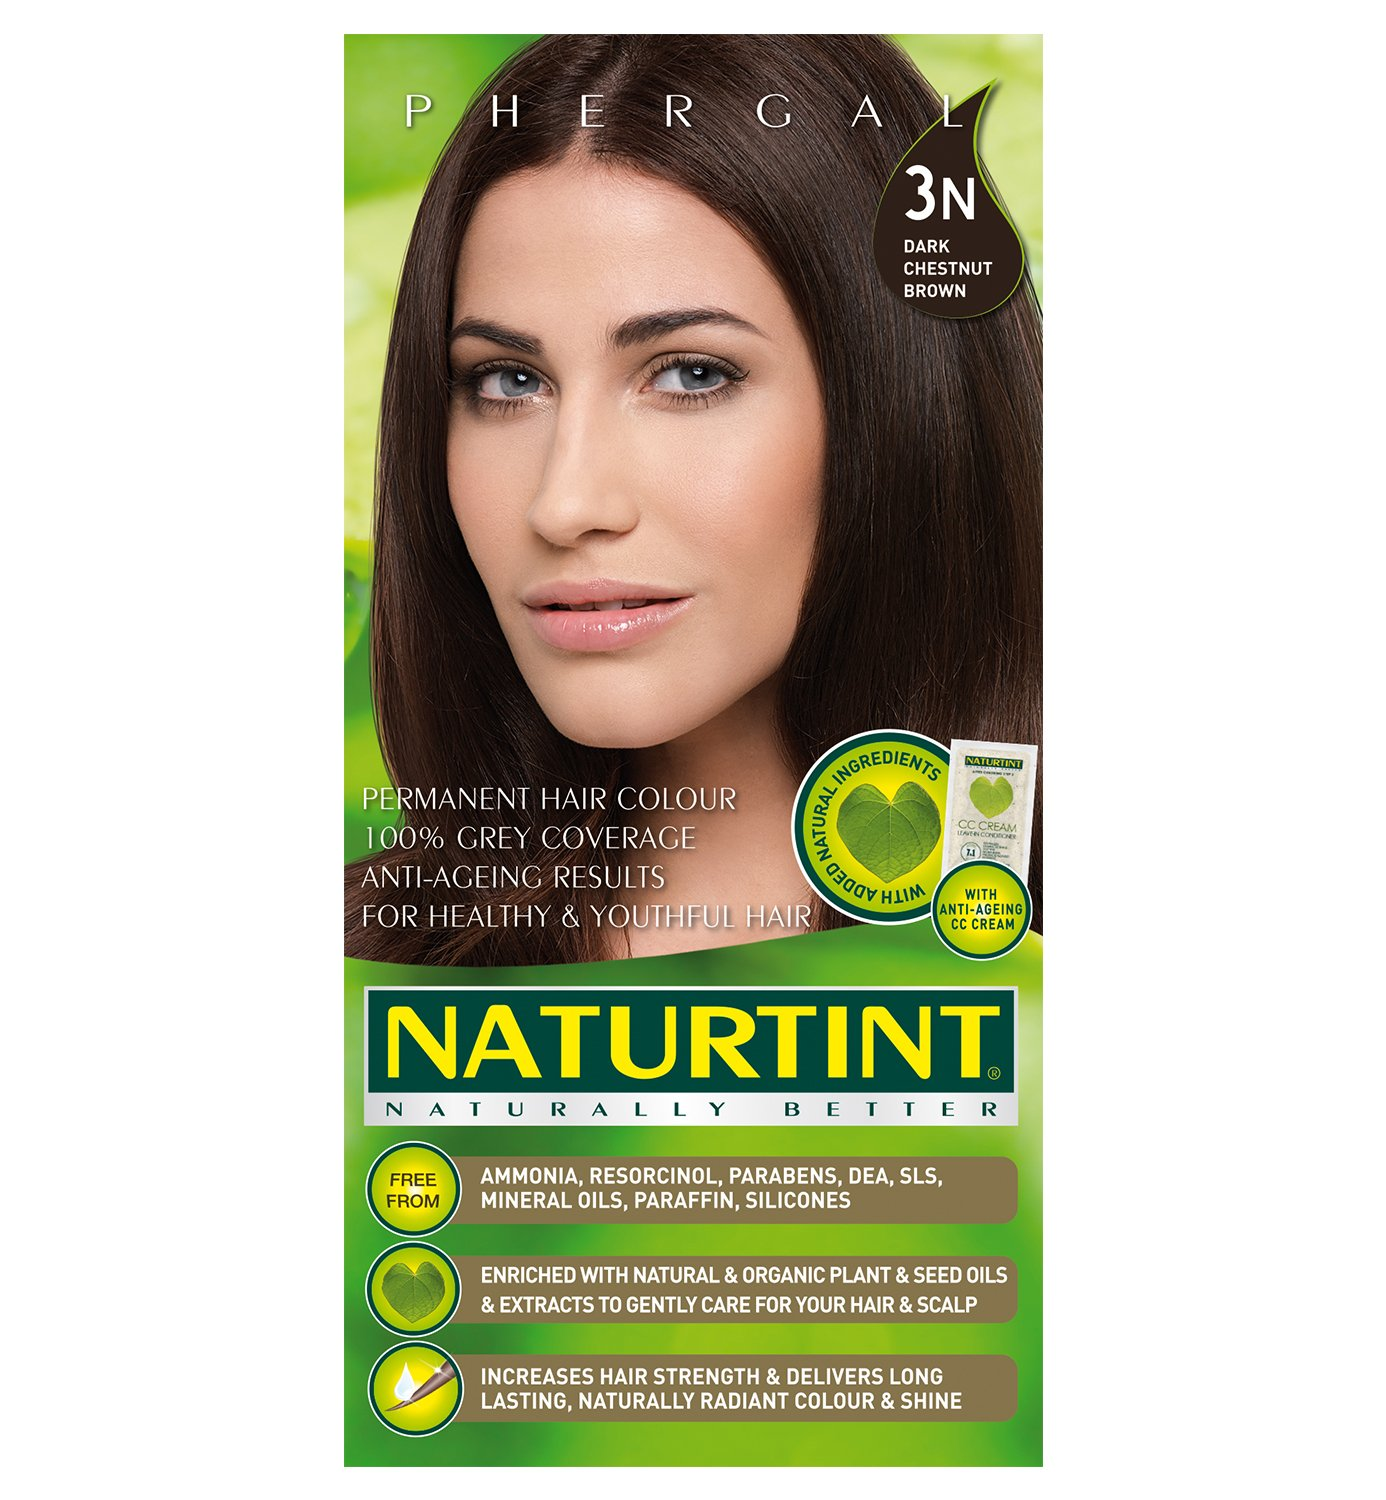 Amazon Naturtint Permanent Hair Colorant Dark Chestnut Brown